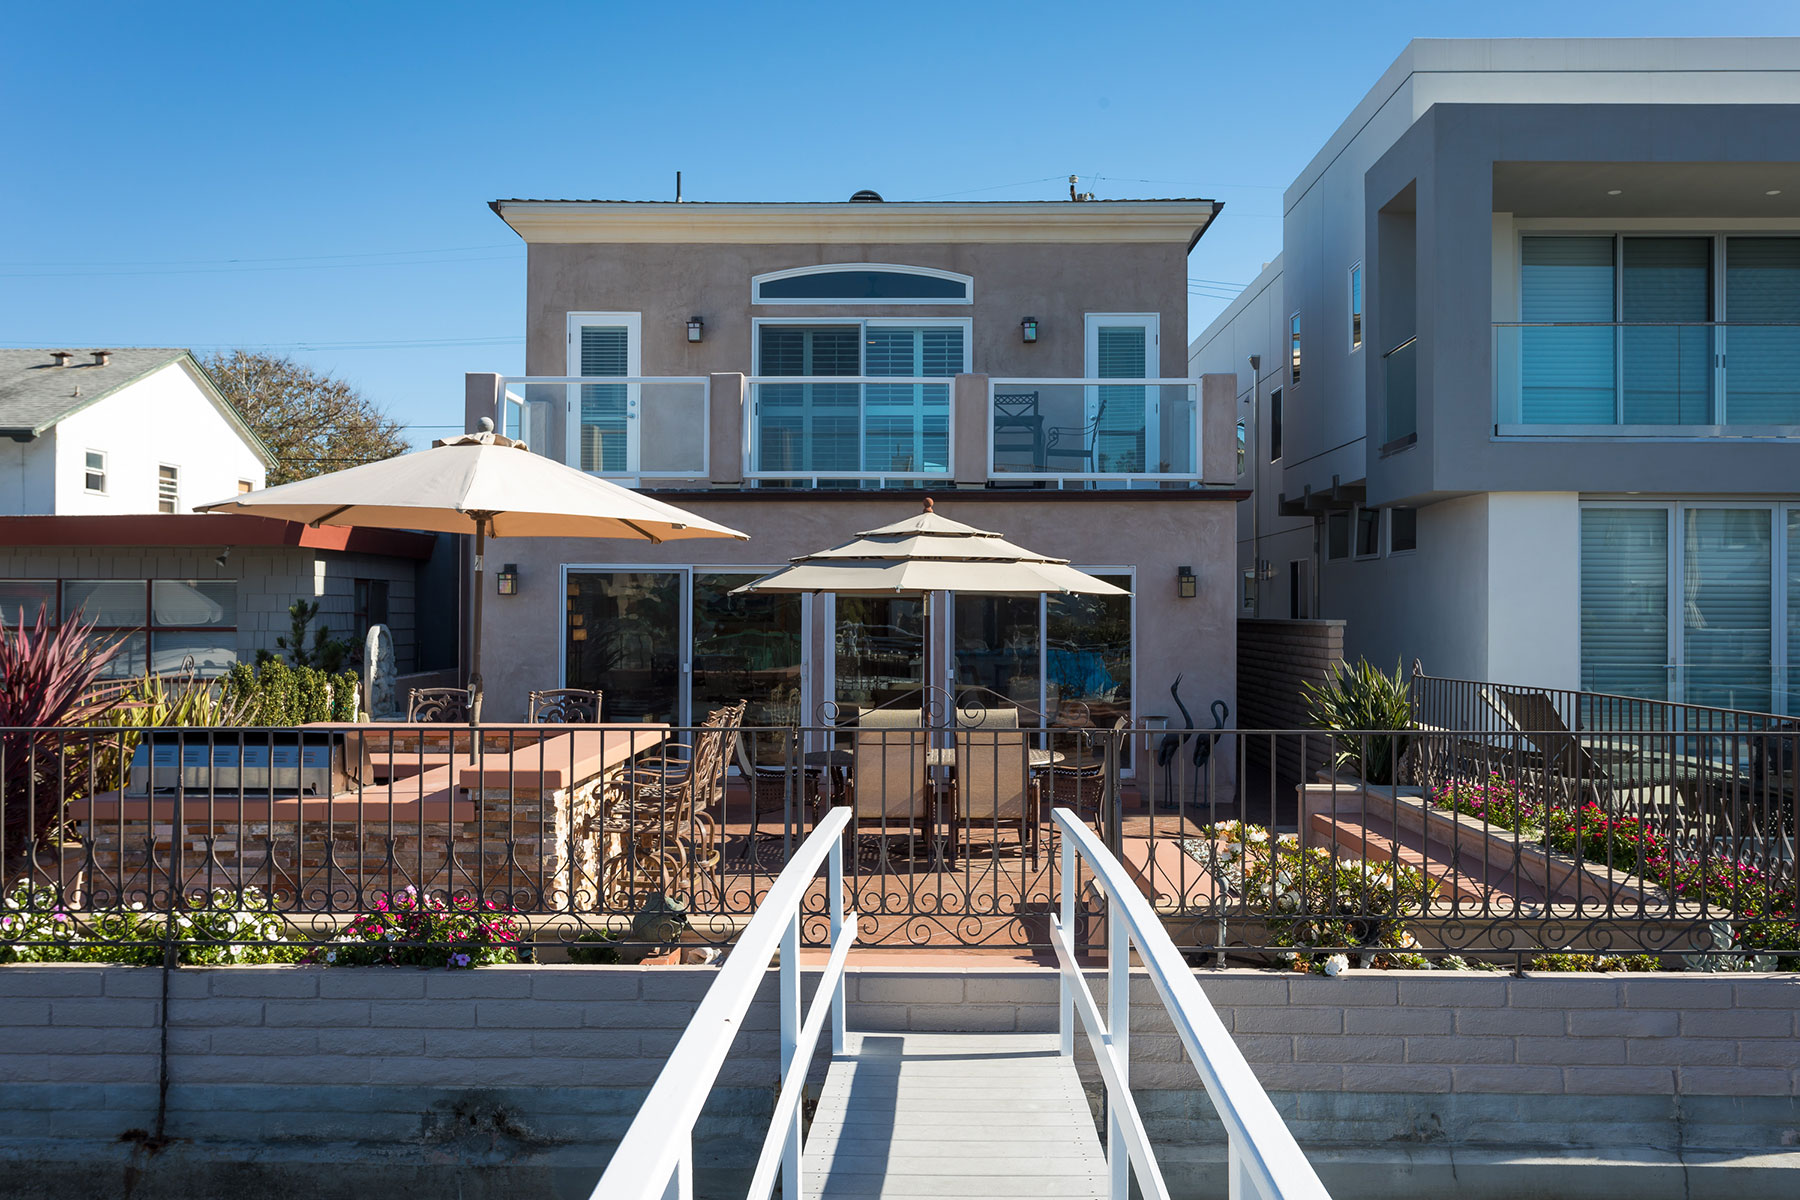 Casa Unifamiliar por un Venta en 507 36th Street Newport Beach, California, 92663 Estados Unidos